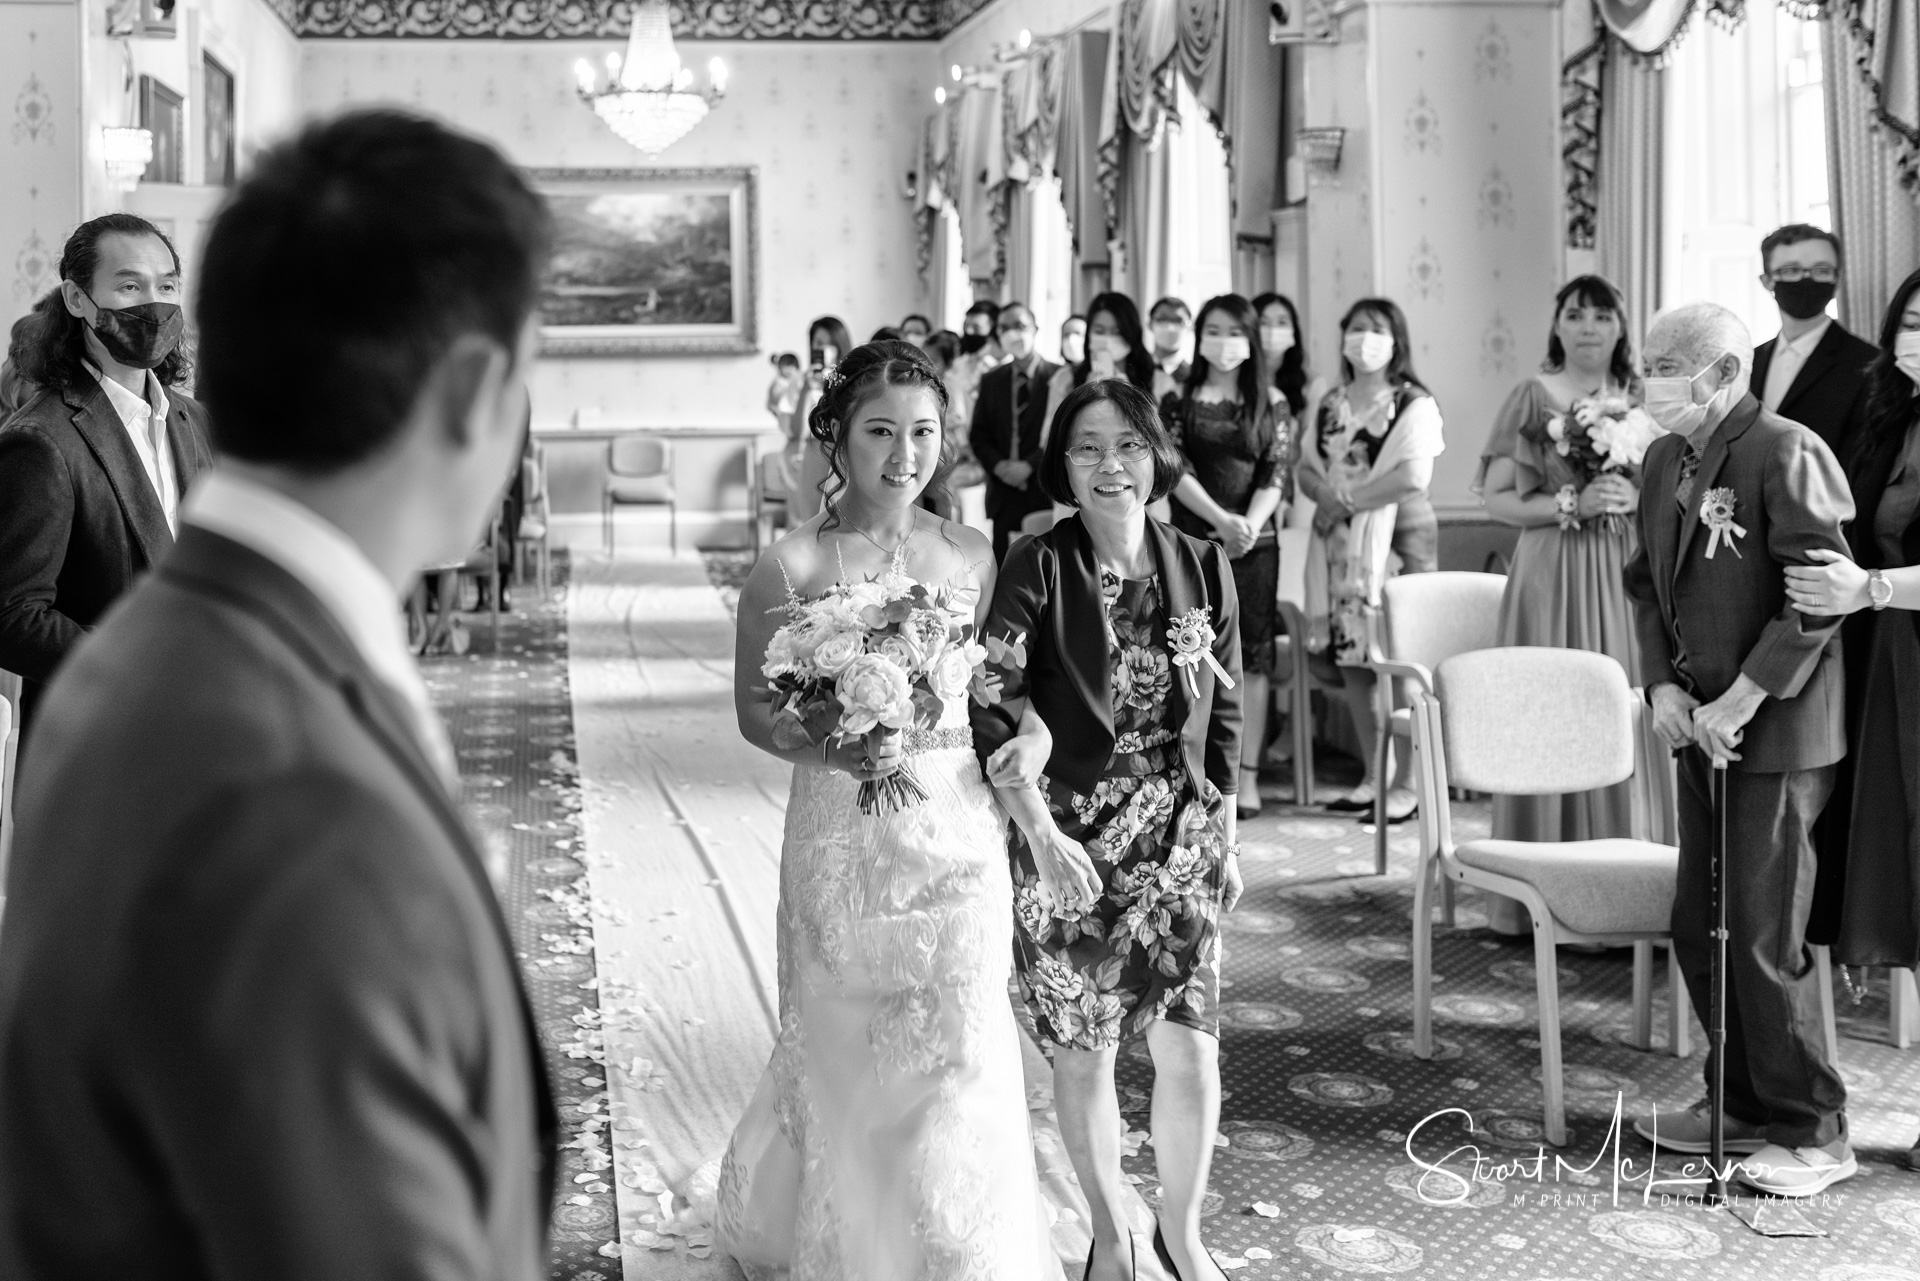 The groom watches his bride being led up the aisle by her mother at Warrington Town Hall